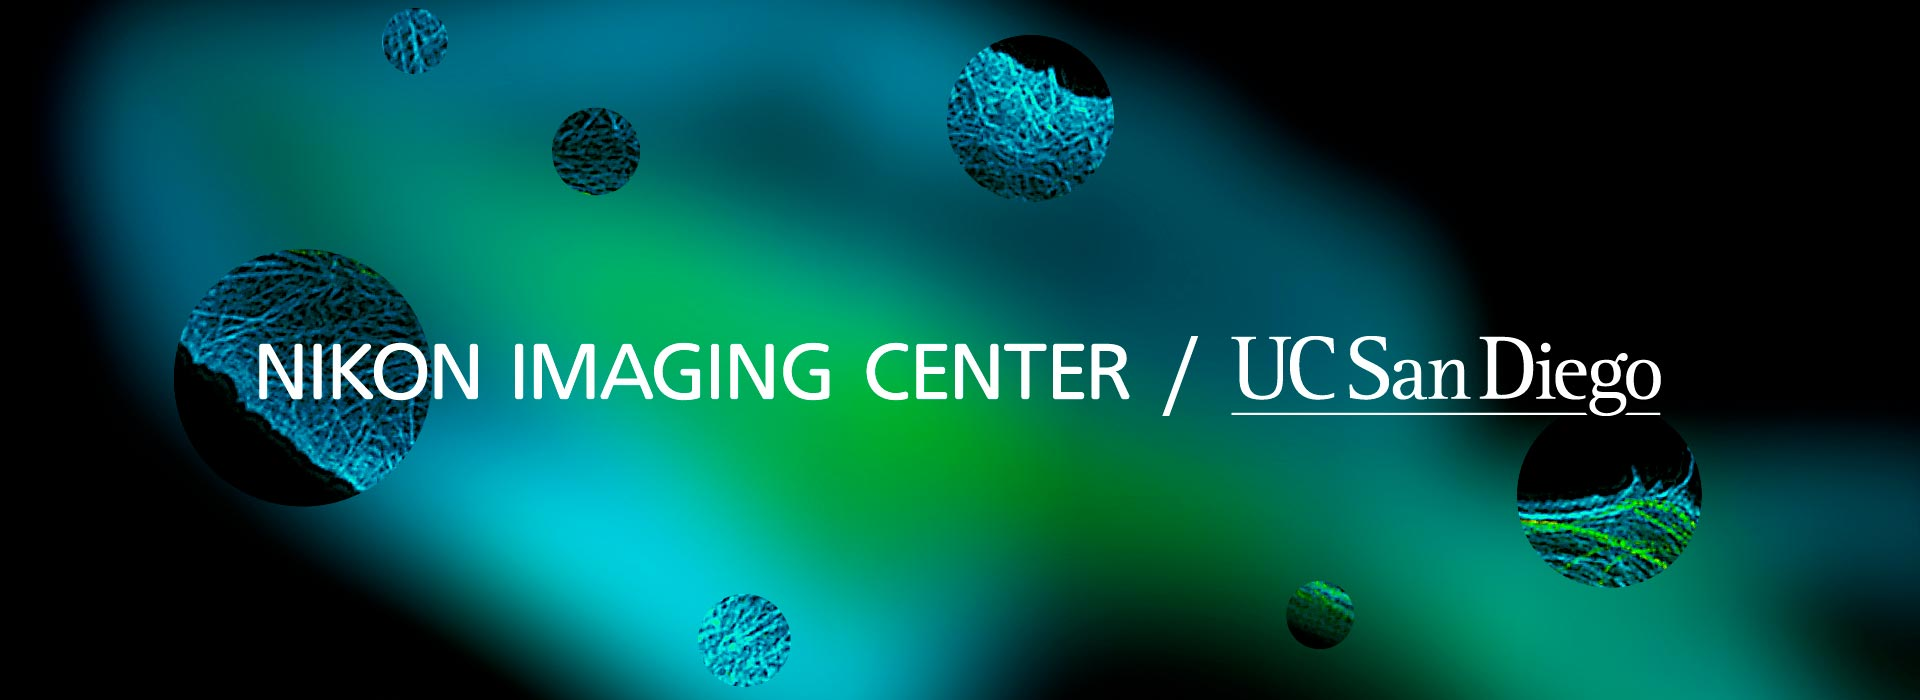 Nikon imaging center at the University of California San Diego logo